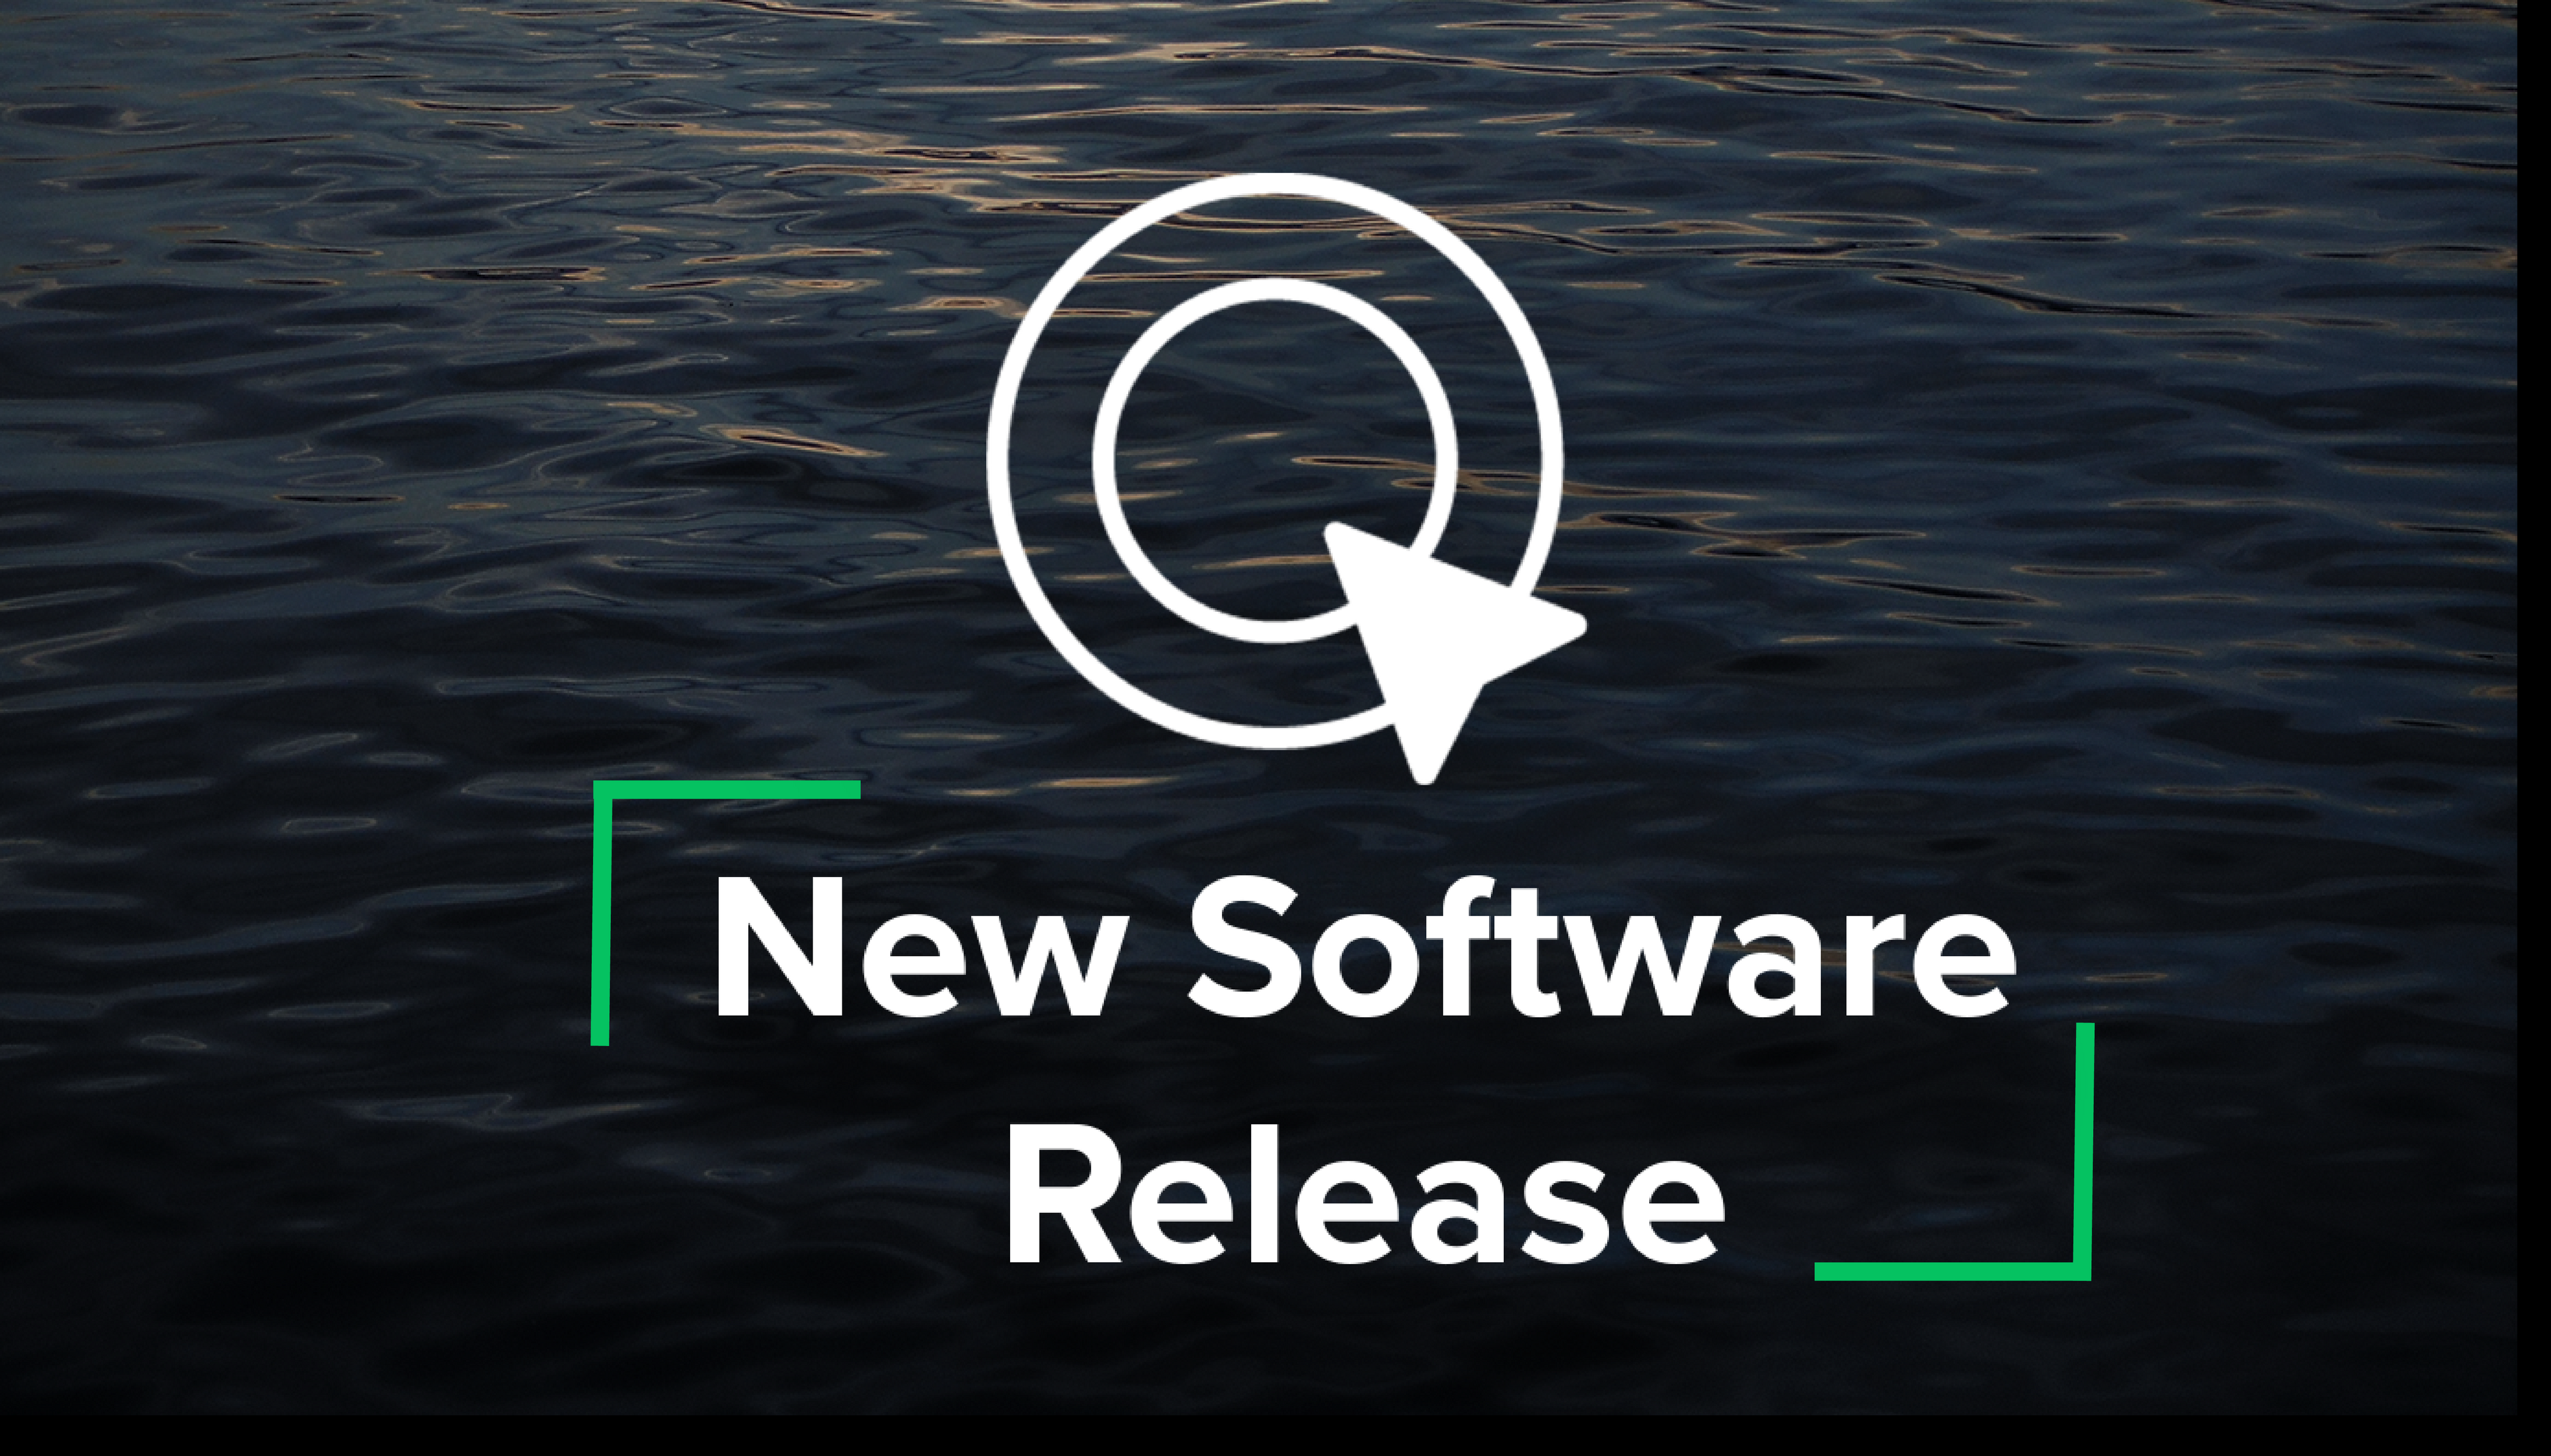 Night mode and other added features – New Q software released